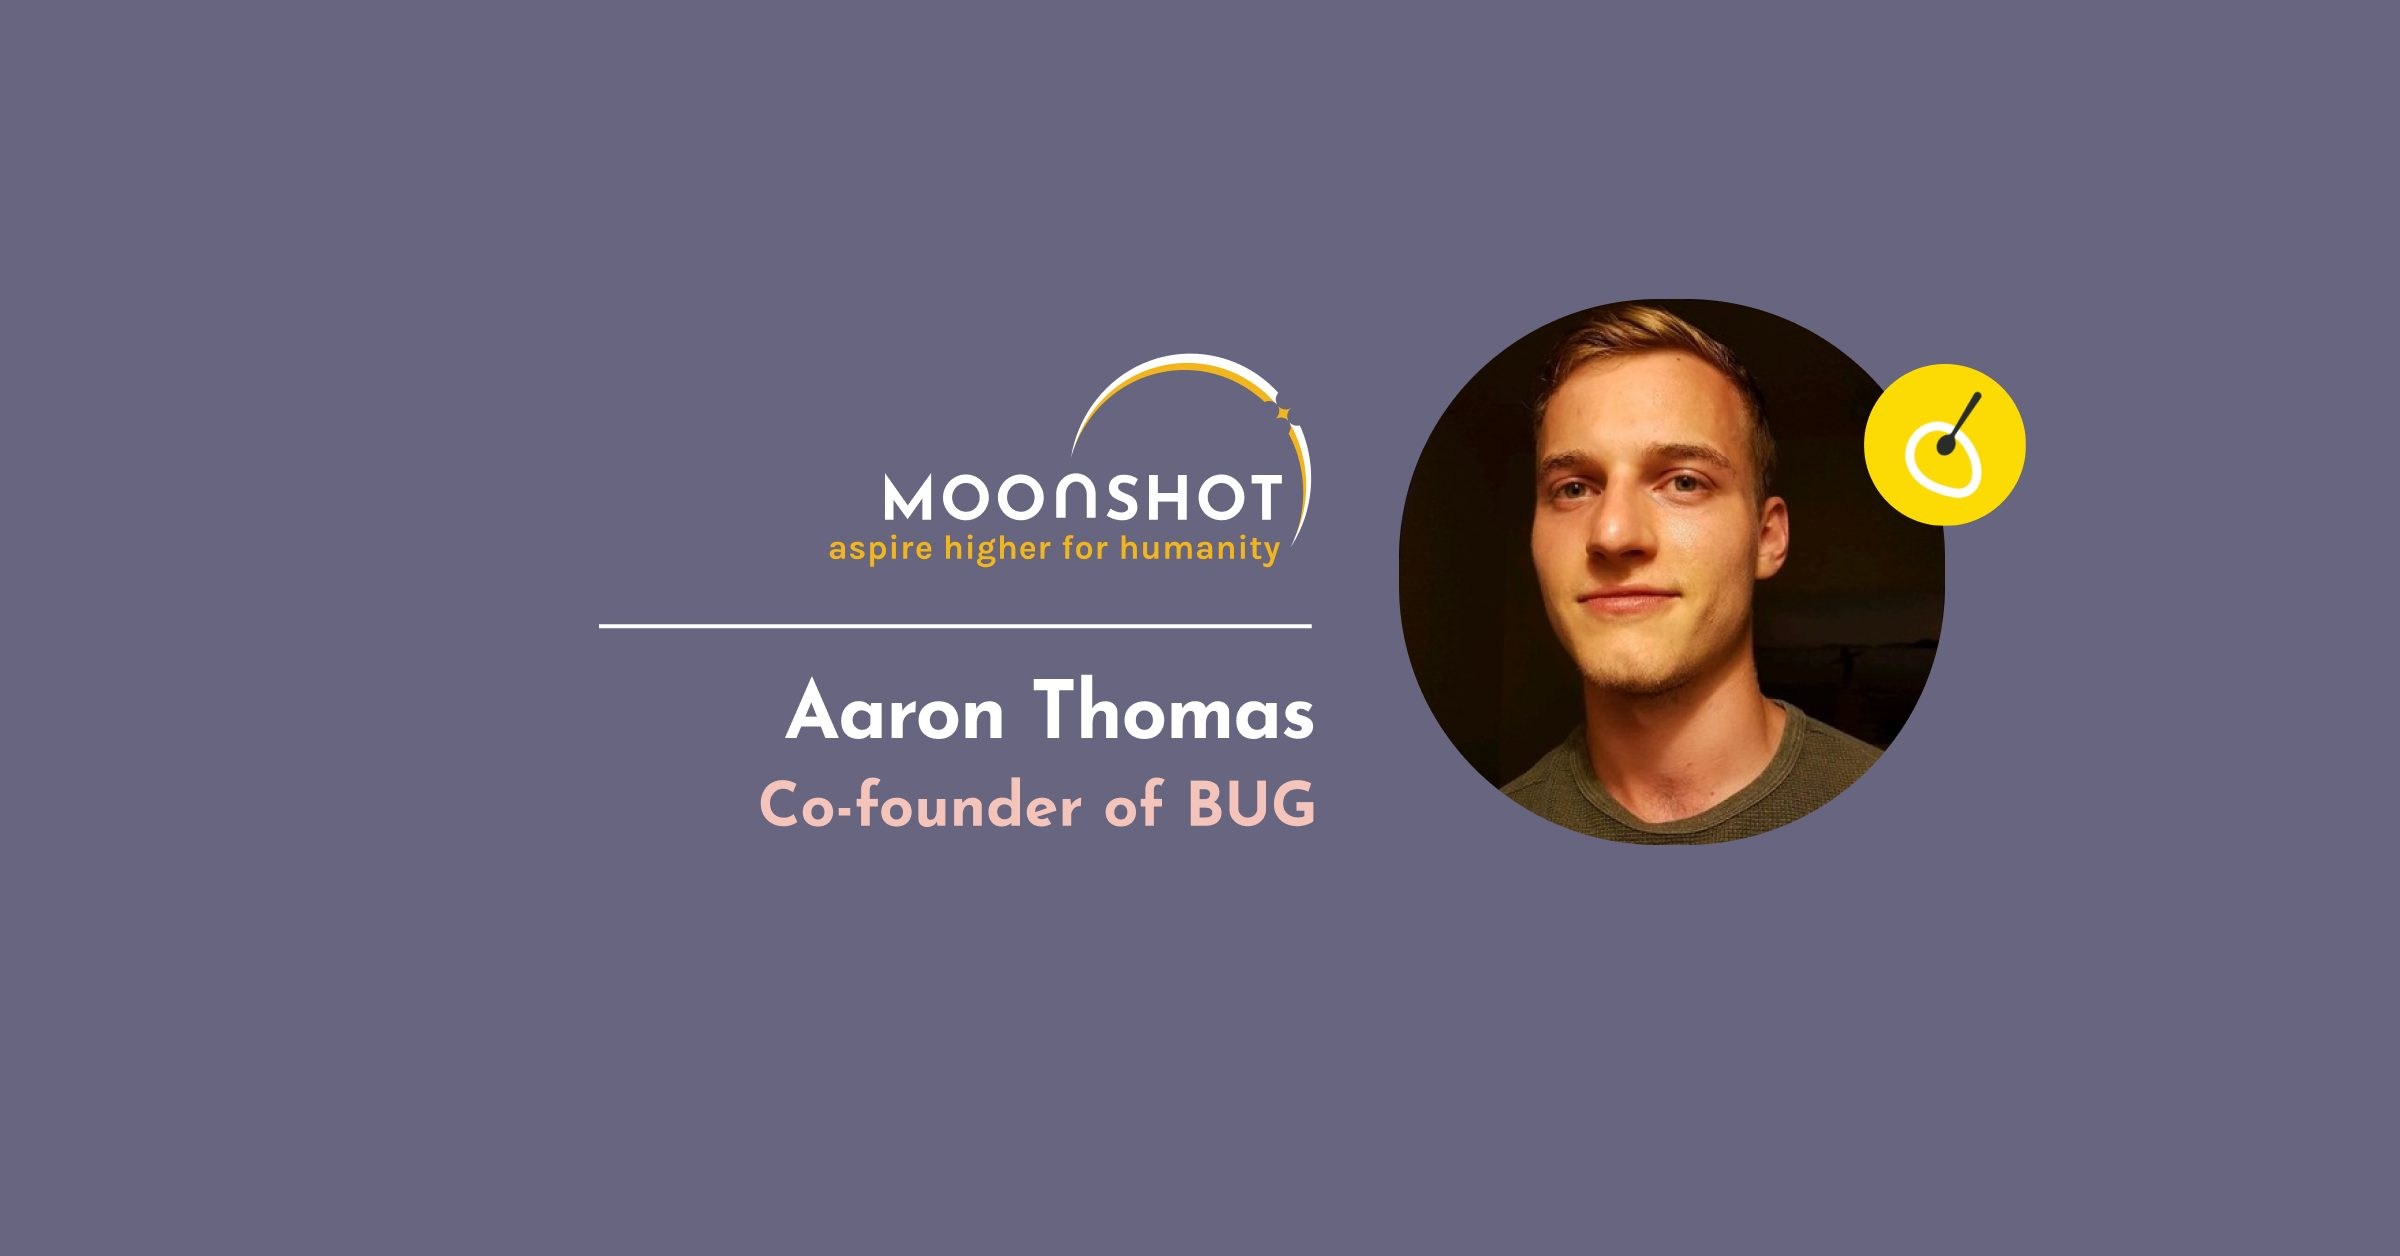 Interview with Co-founder of BUG, Aaron Thomas